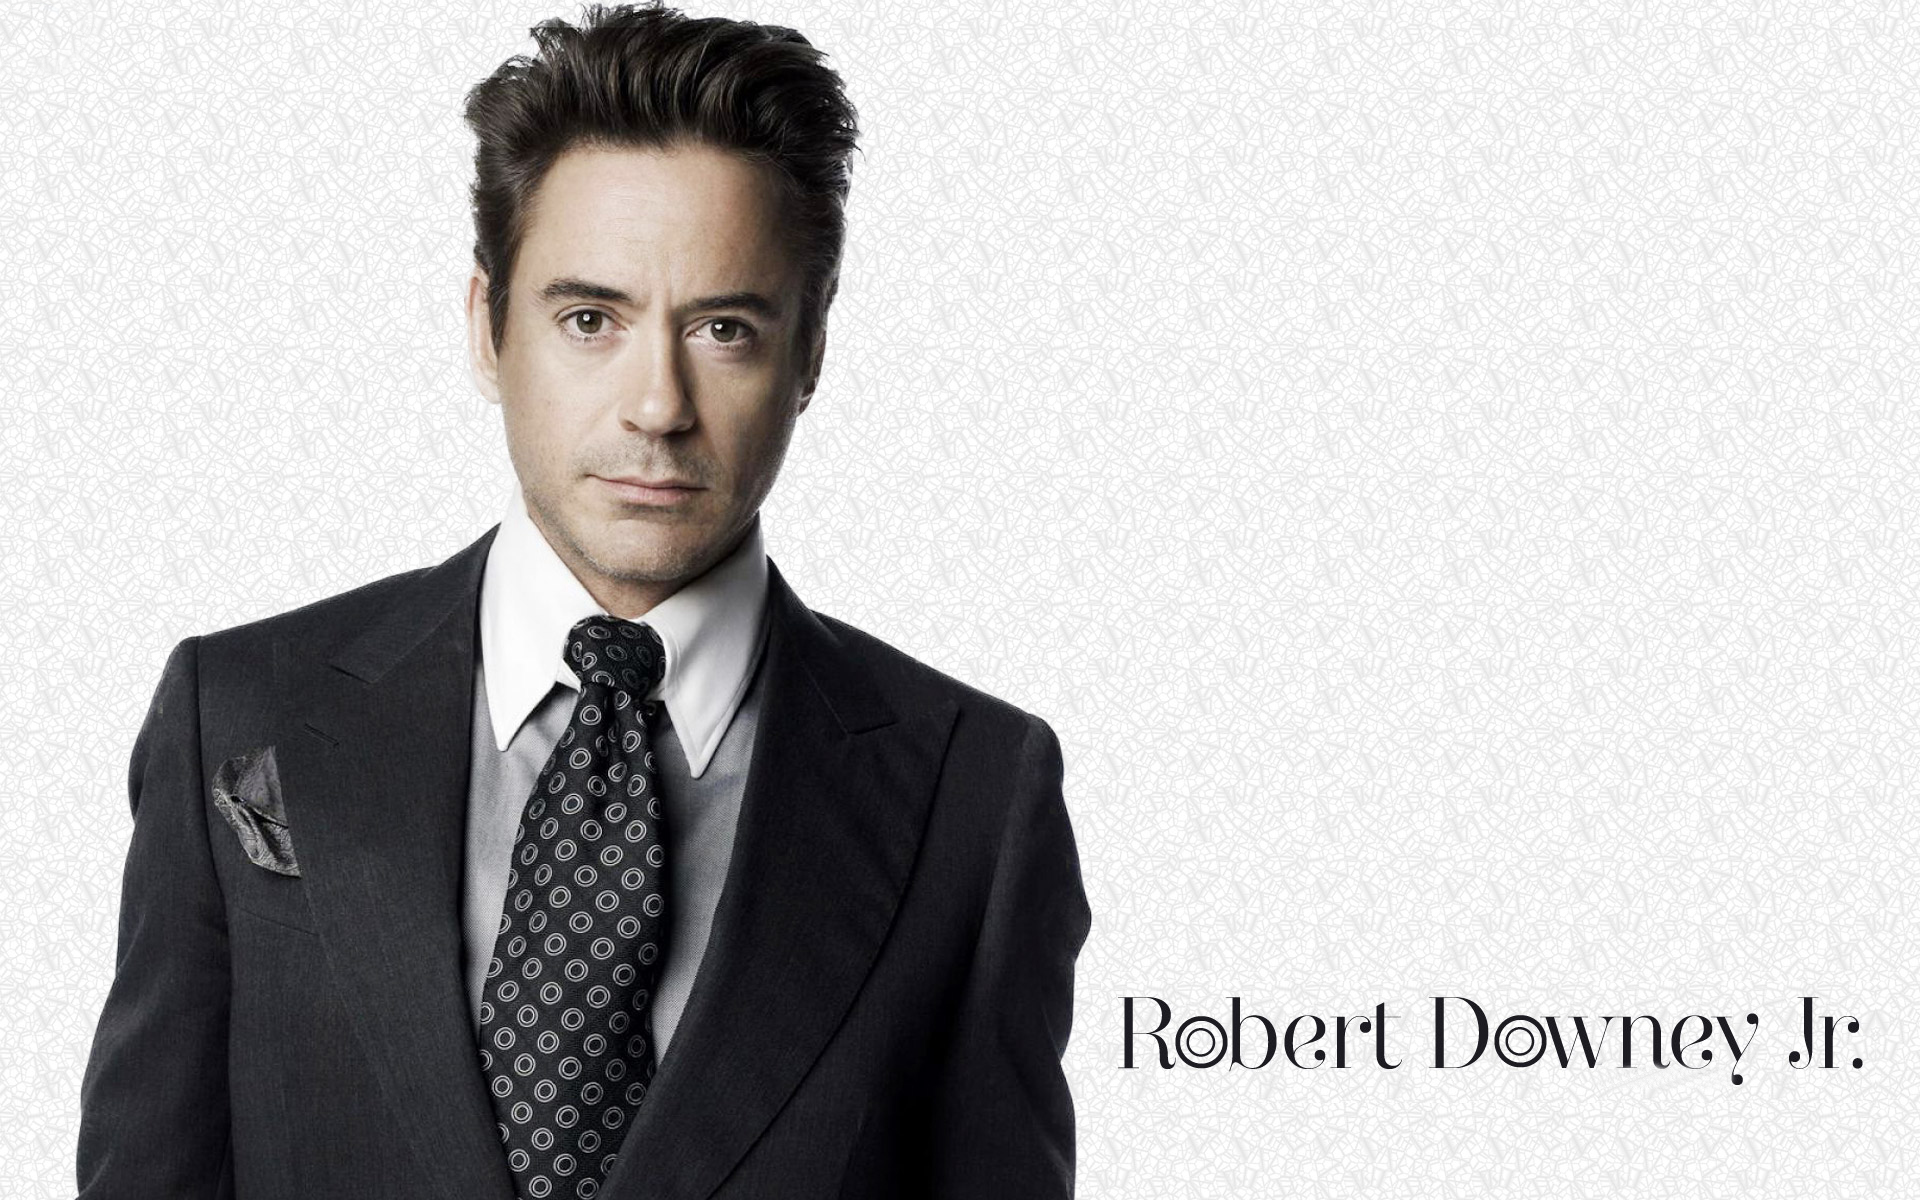 Robert Downey Jr Wallpapers High Resolution And Quality